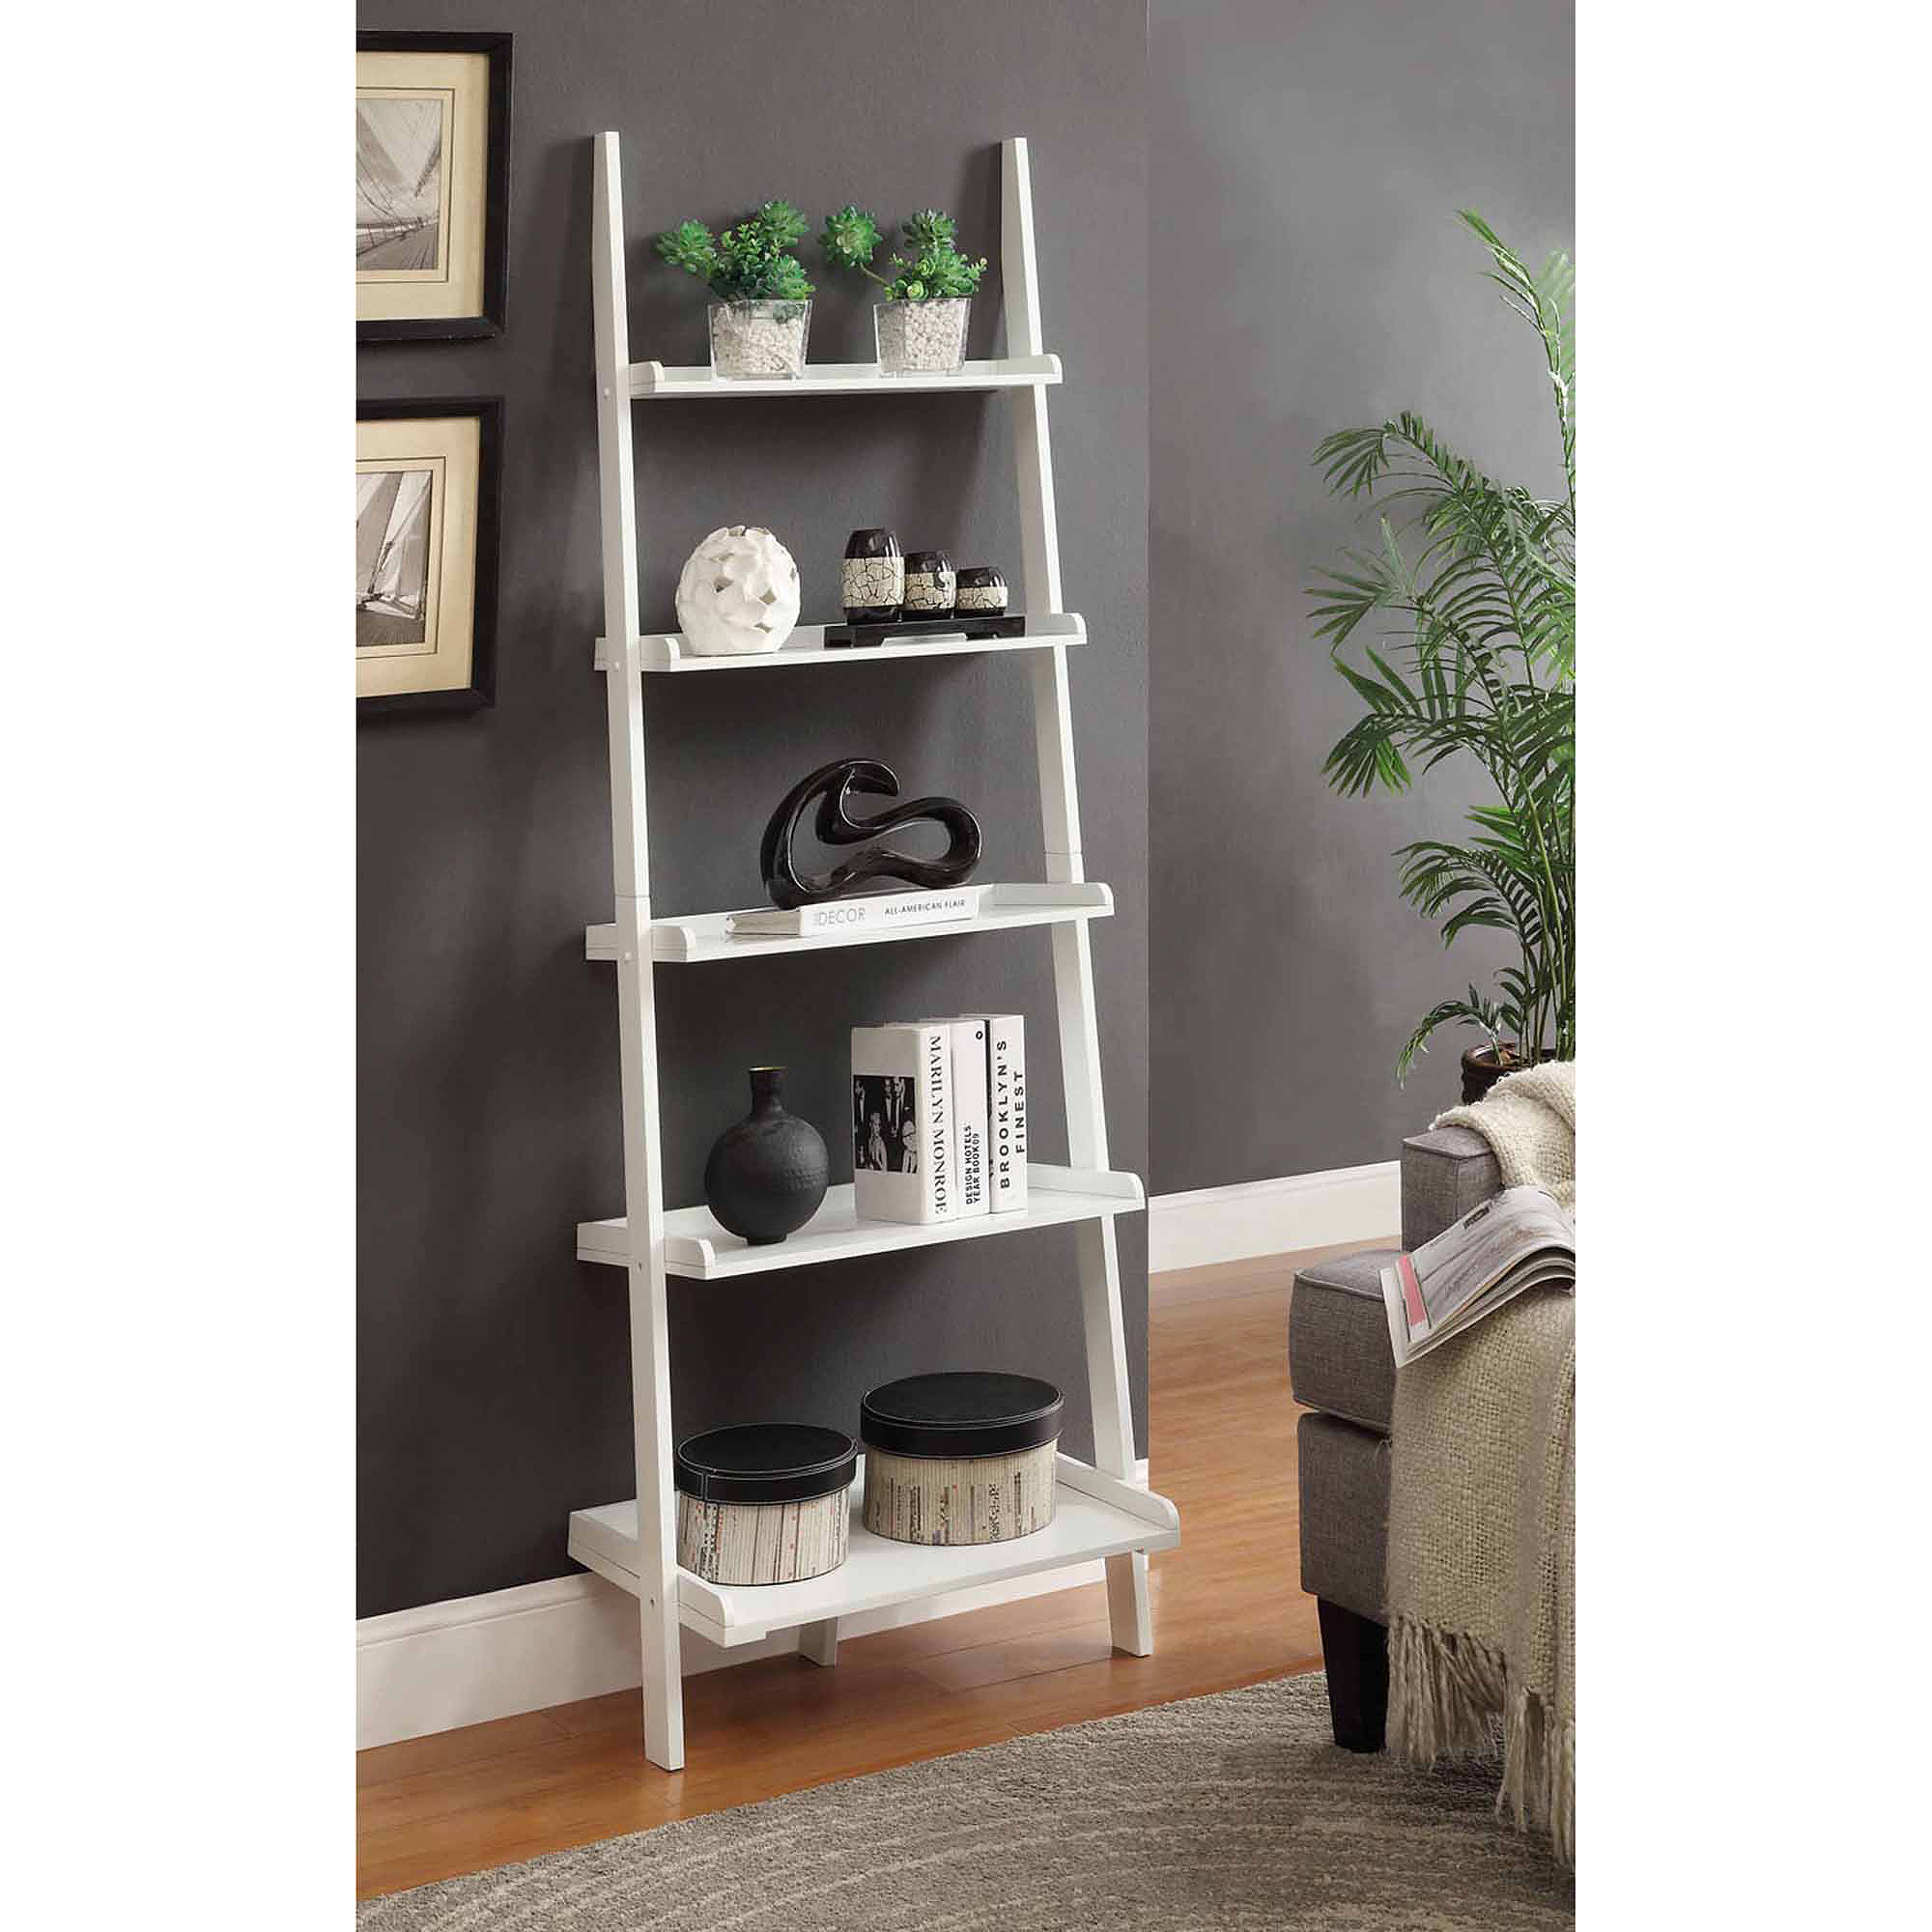 Convenience Concepts French Country Bookshelf Ladder, White  Walmart